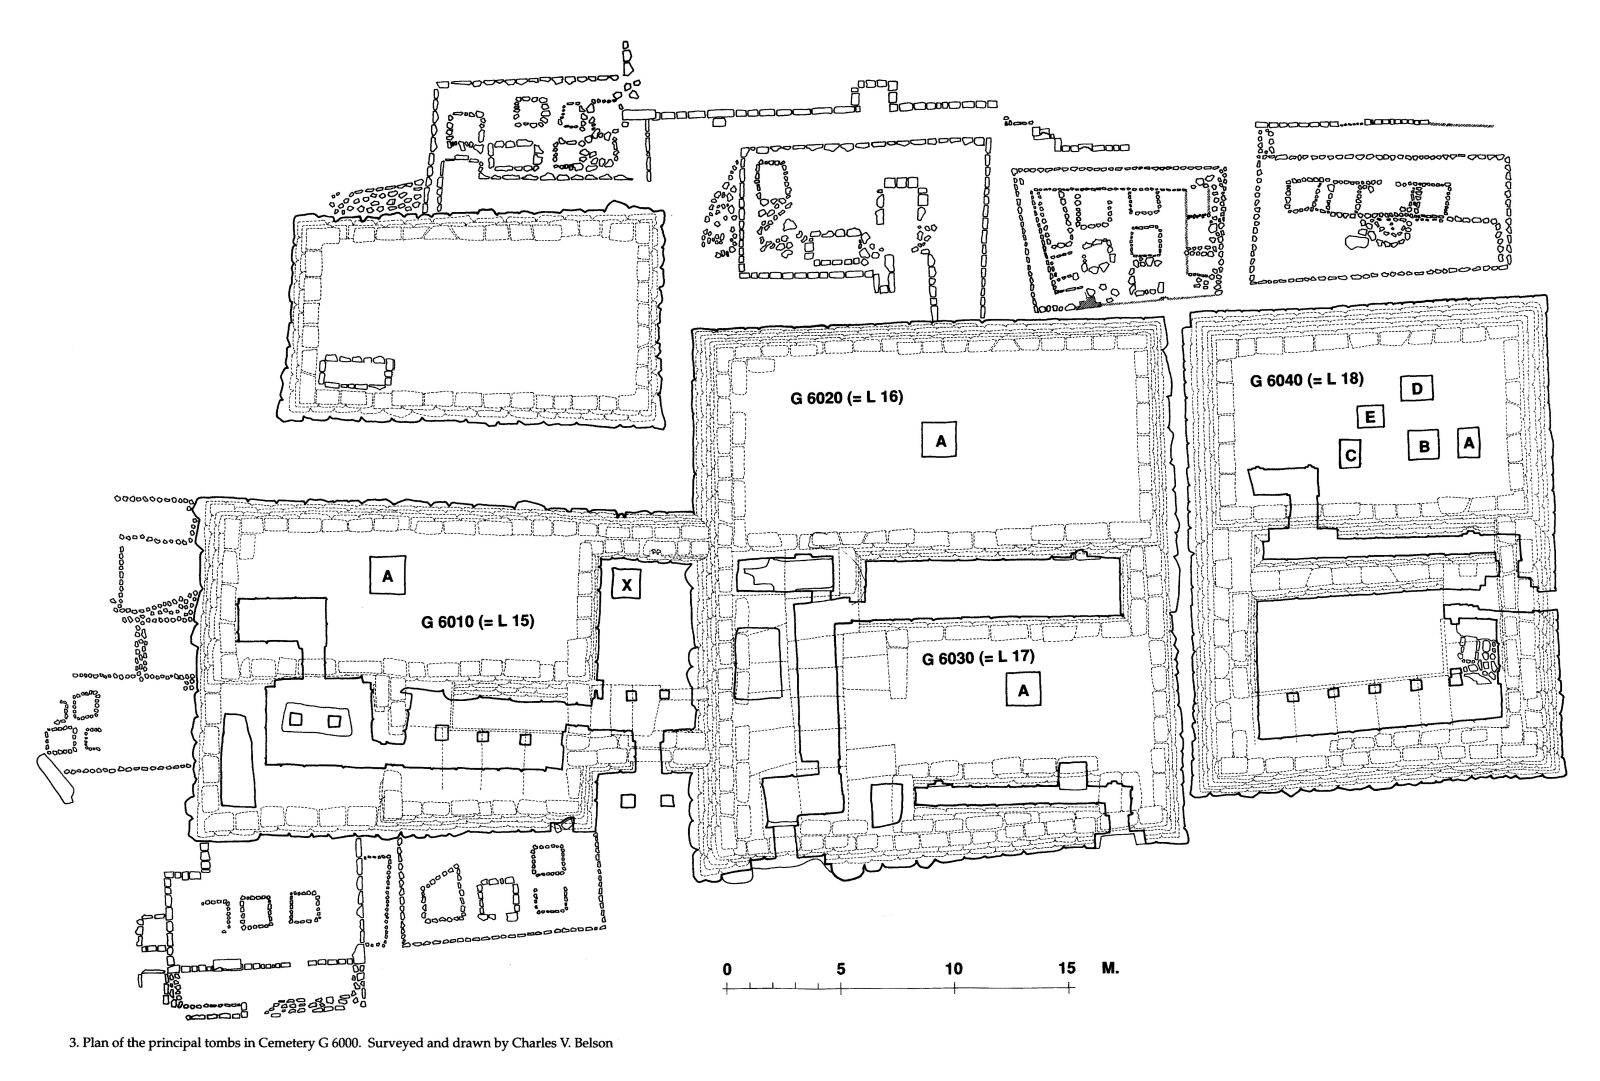 Maps and plans: Plan of Cemetery 6000, principal tombs